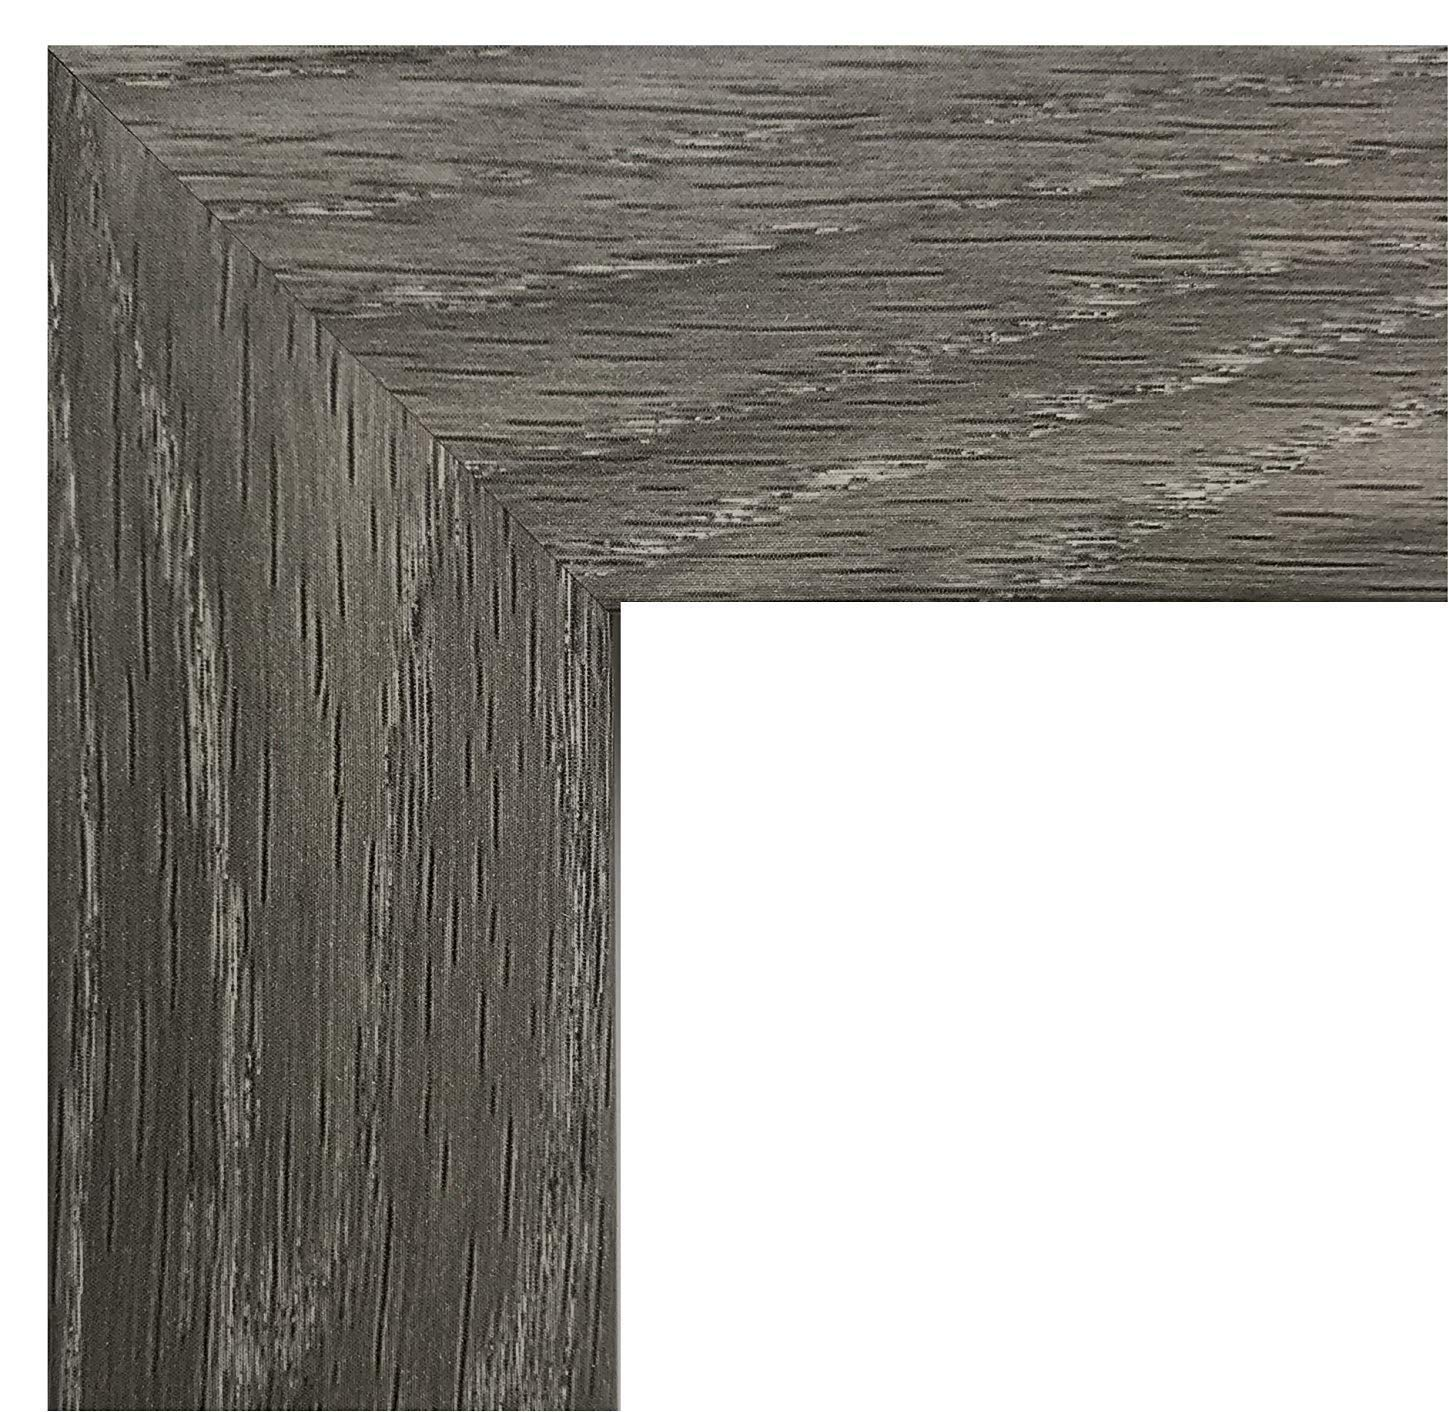 US Art Frames 13x19 Inch Picture Frame, Smooth Wrap Finish, 1.25-Inch Wide, Distressed Rustic Grey Barnwood (This is NOT Real Barnwood), Wood Composite MDF by US Art